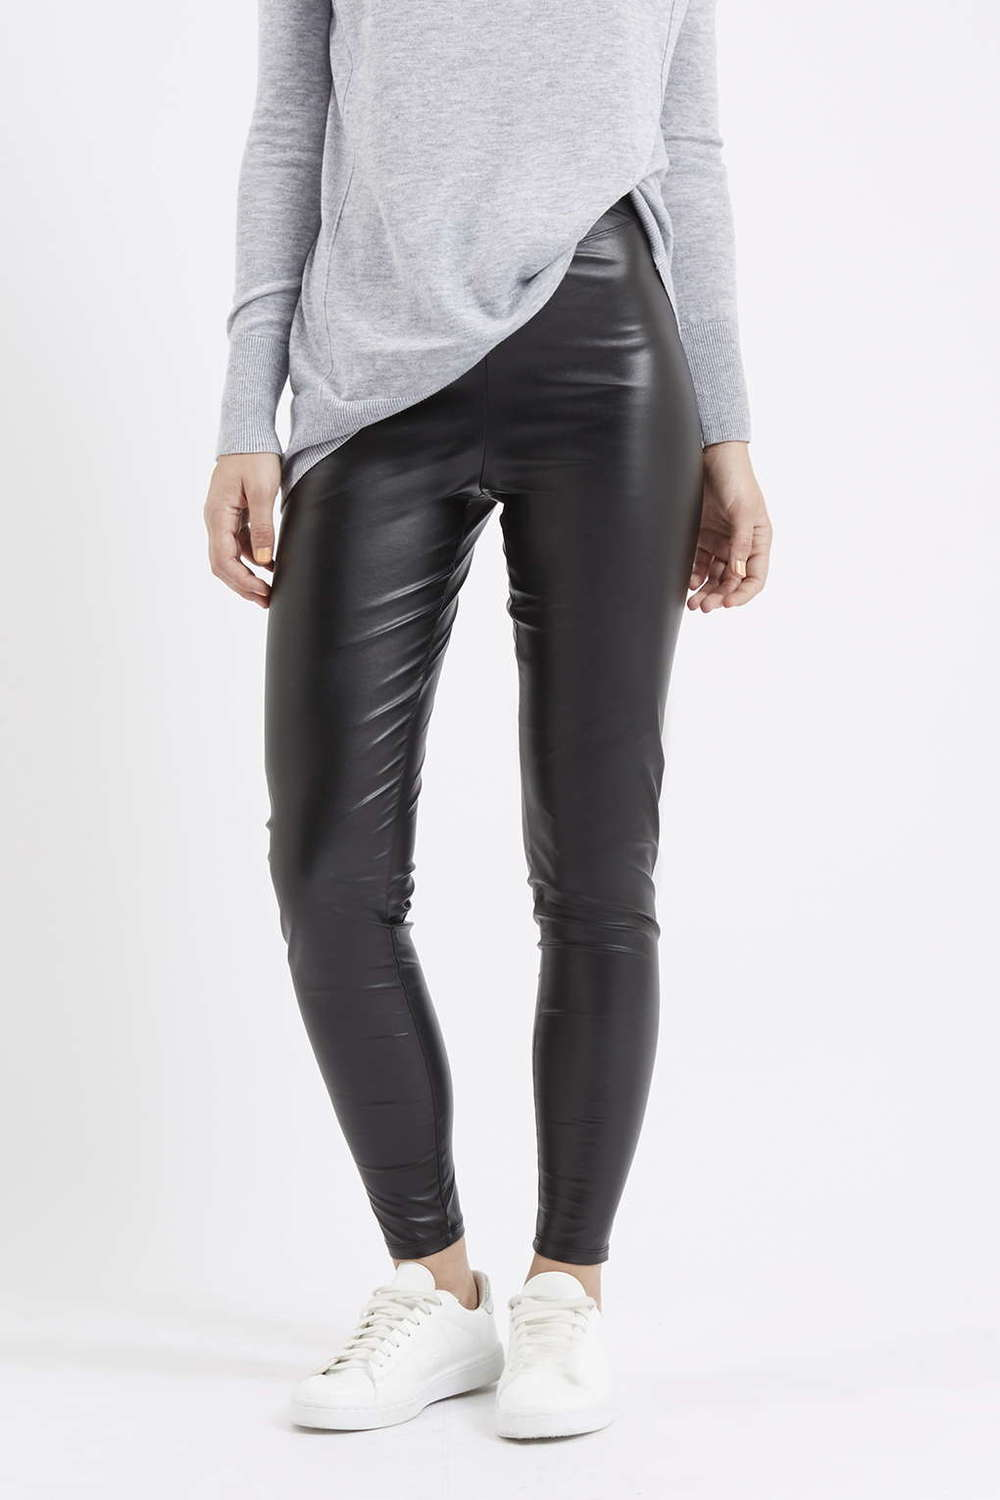 topshop leggings leather